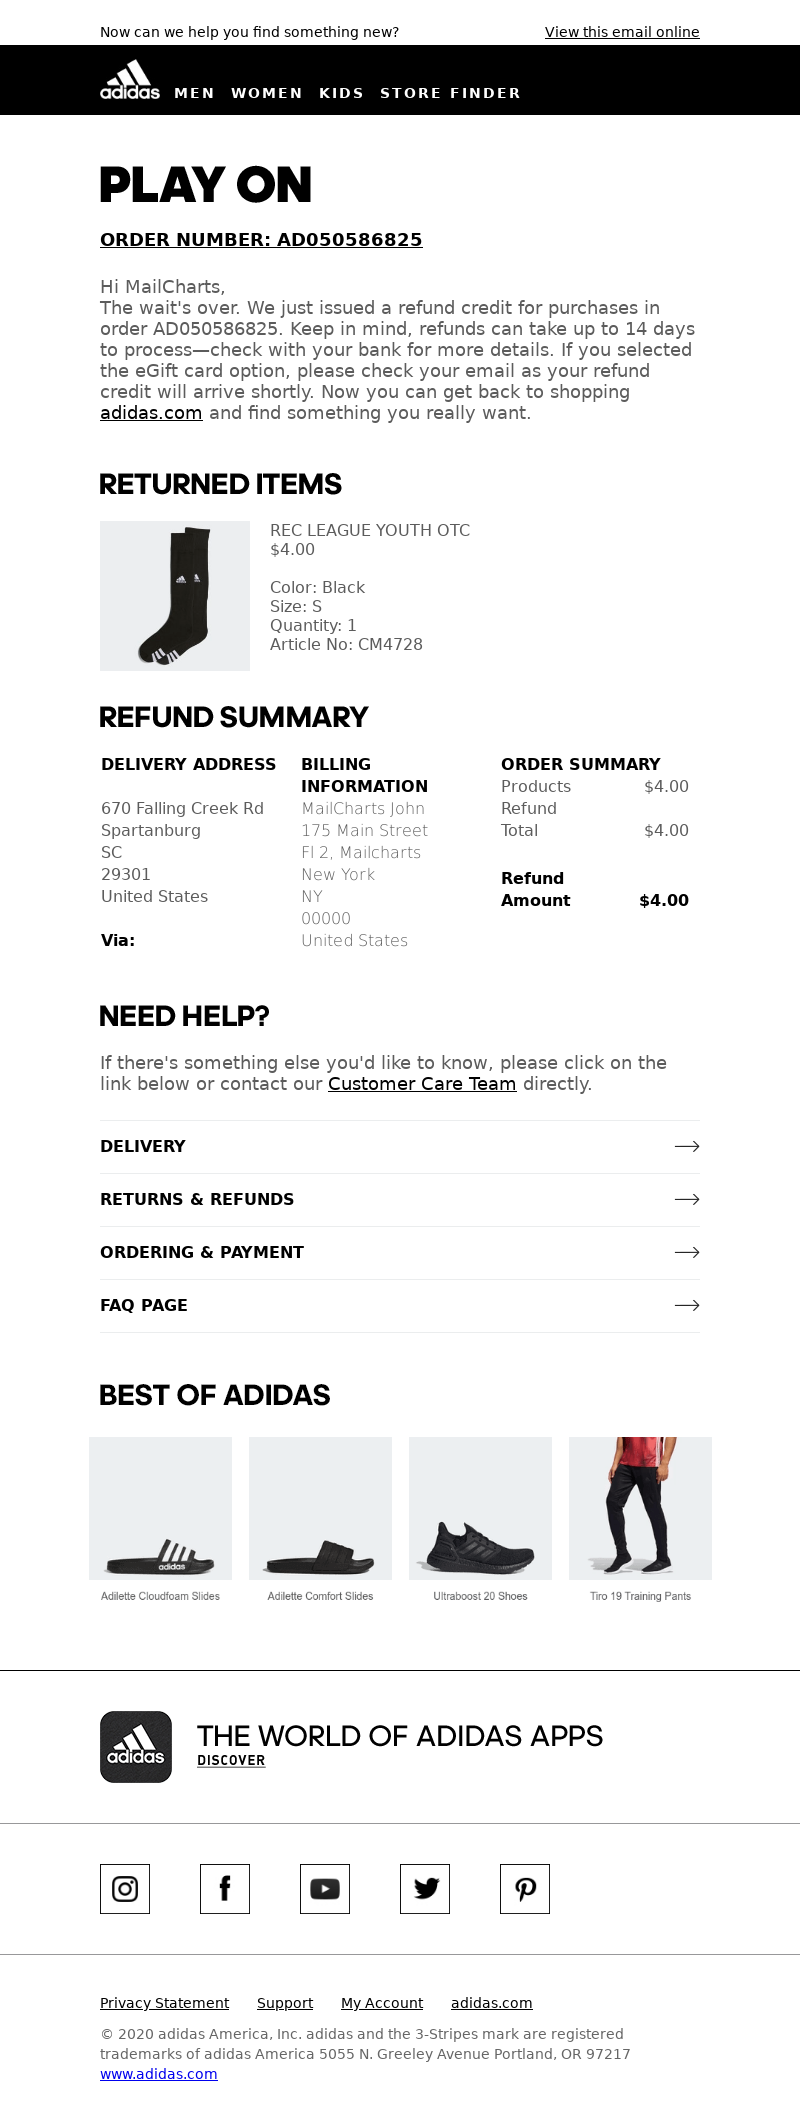 Adidas USA - MailCharts, your adidas return credit was issued